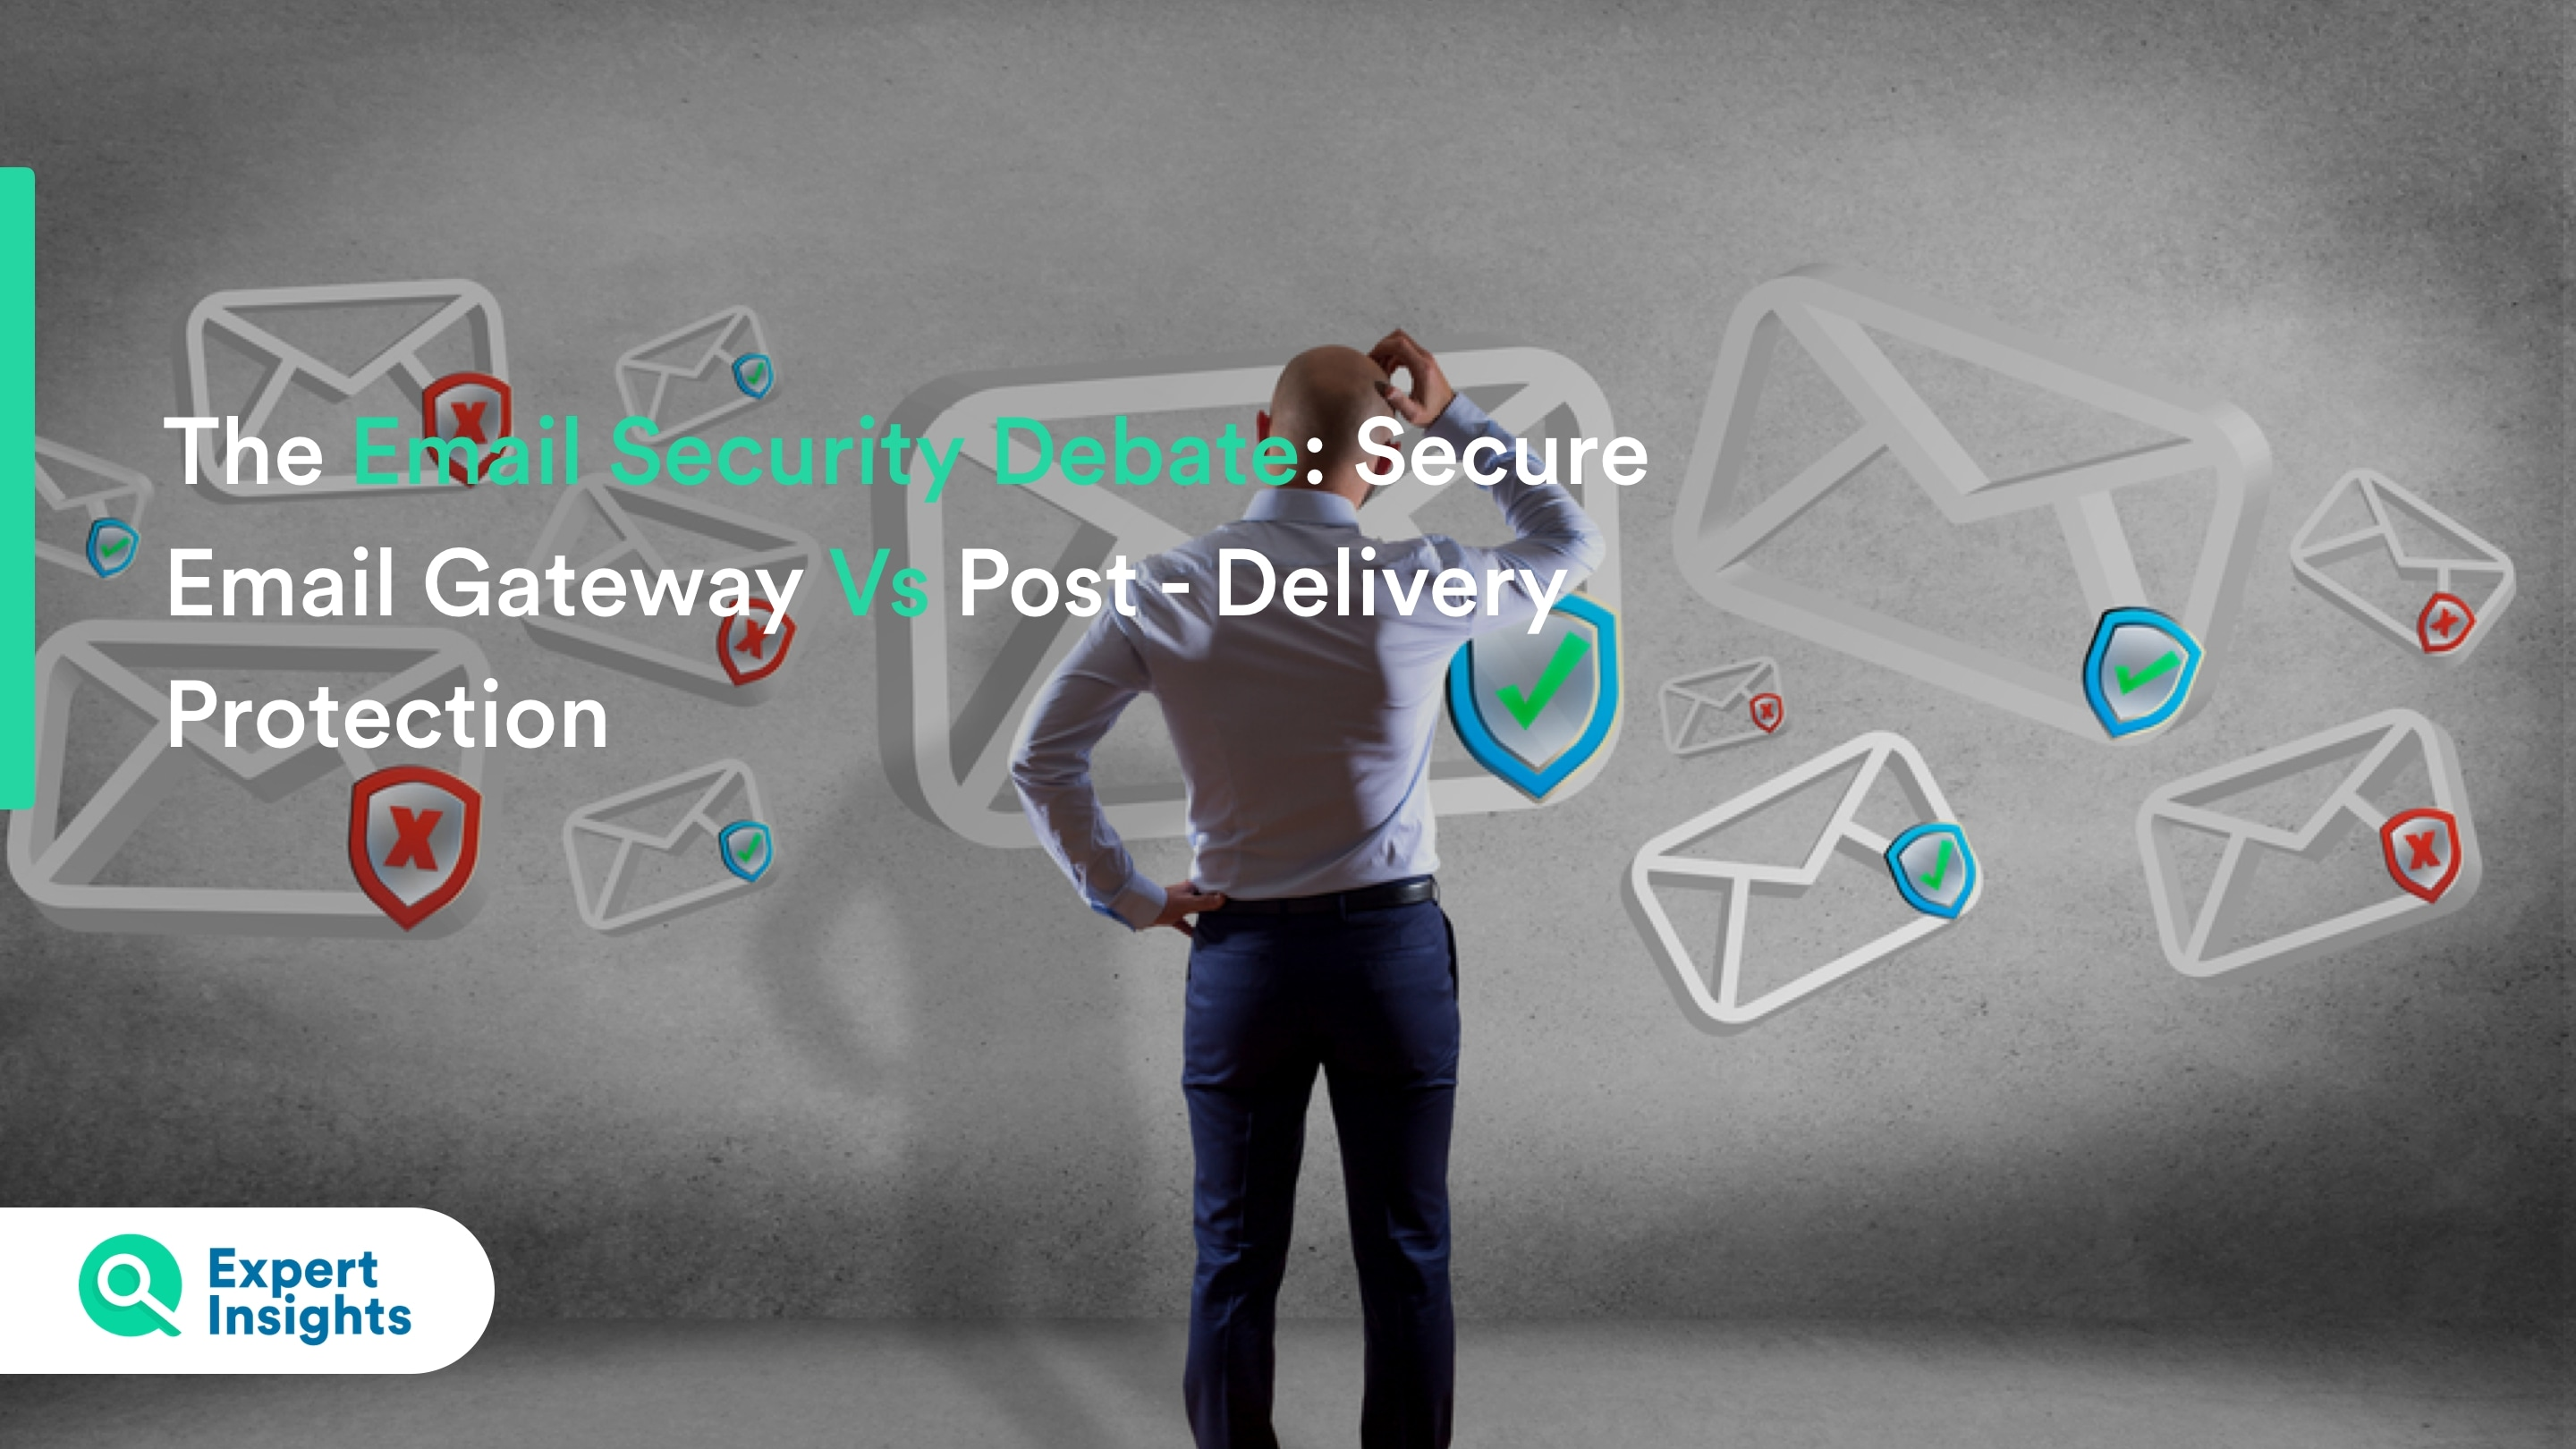 The email security debate expert insights